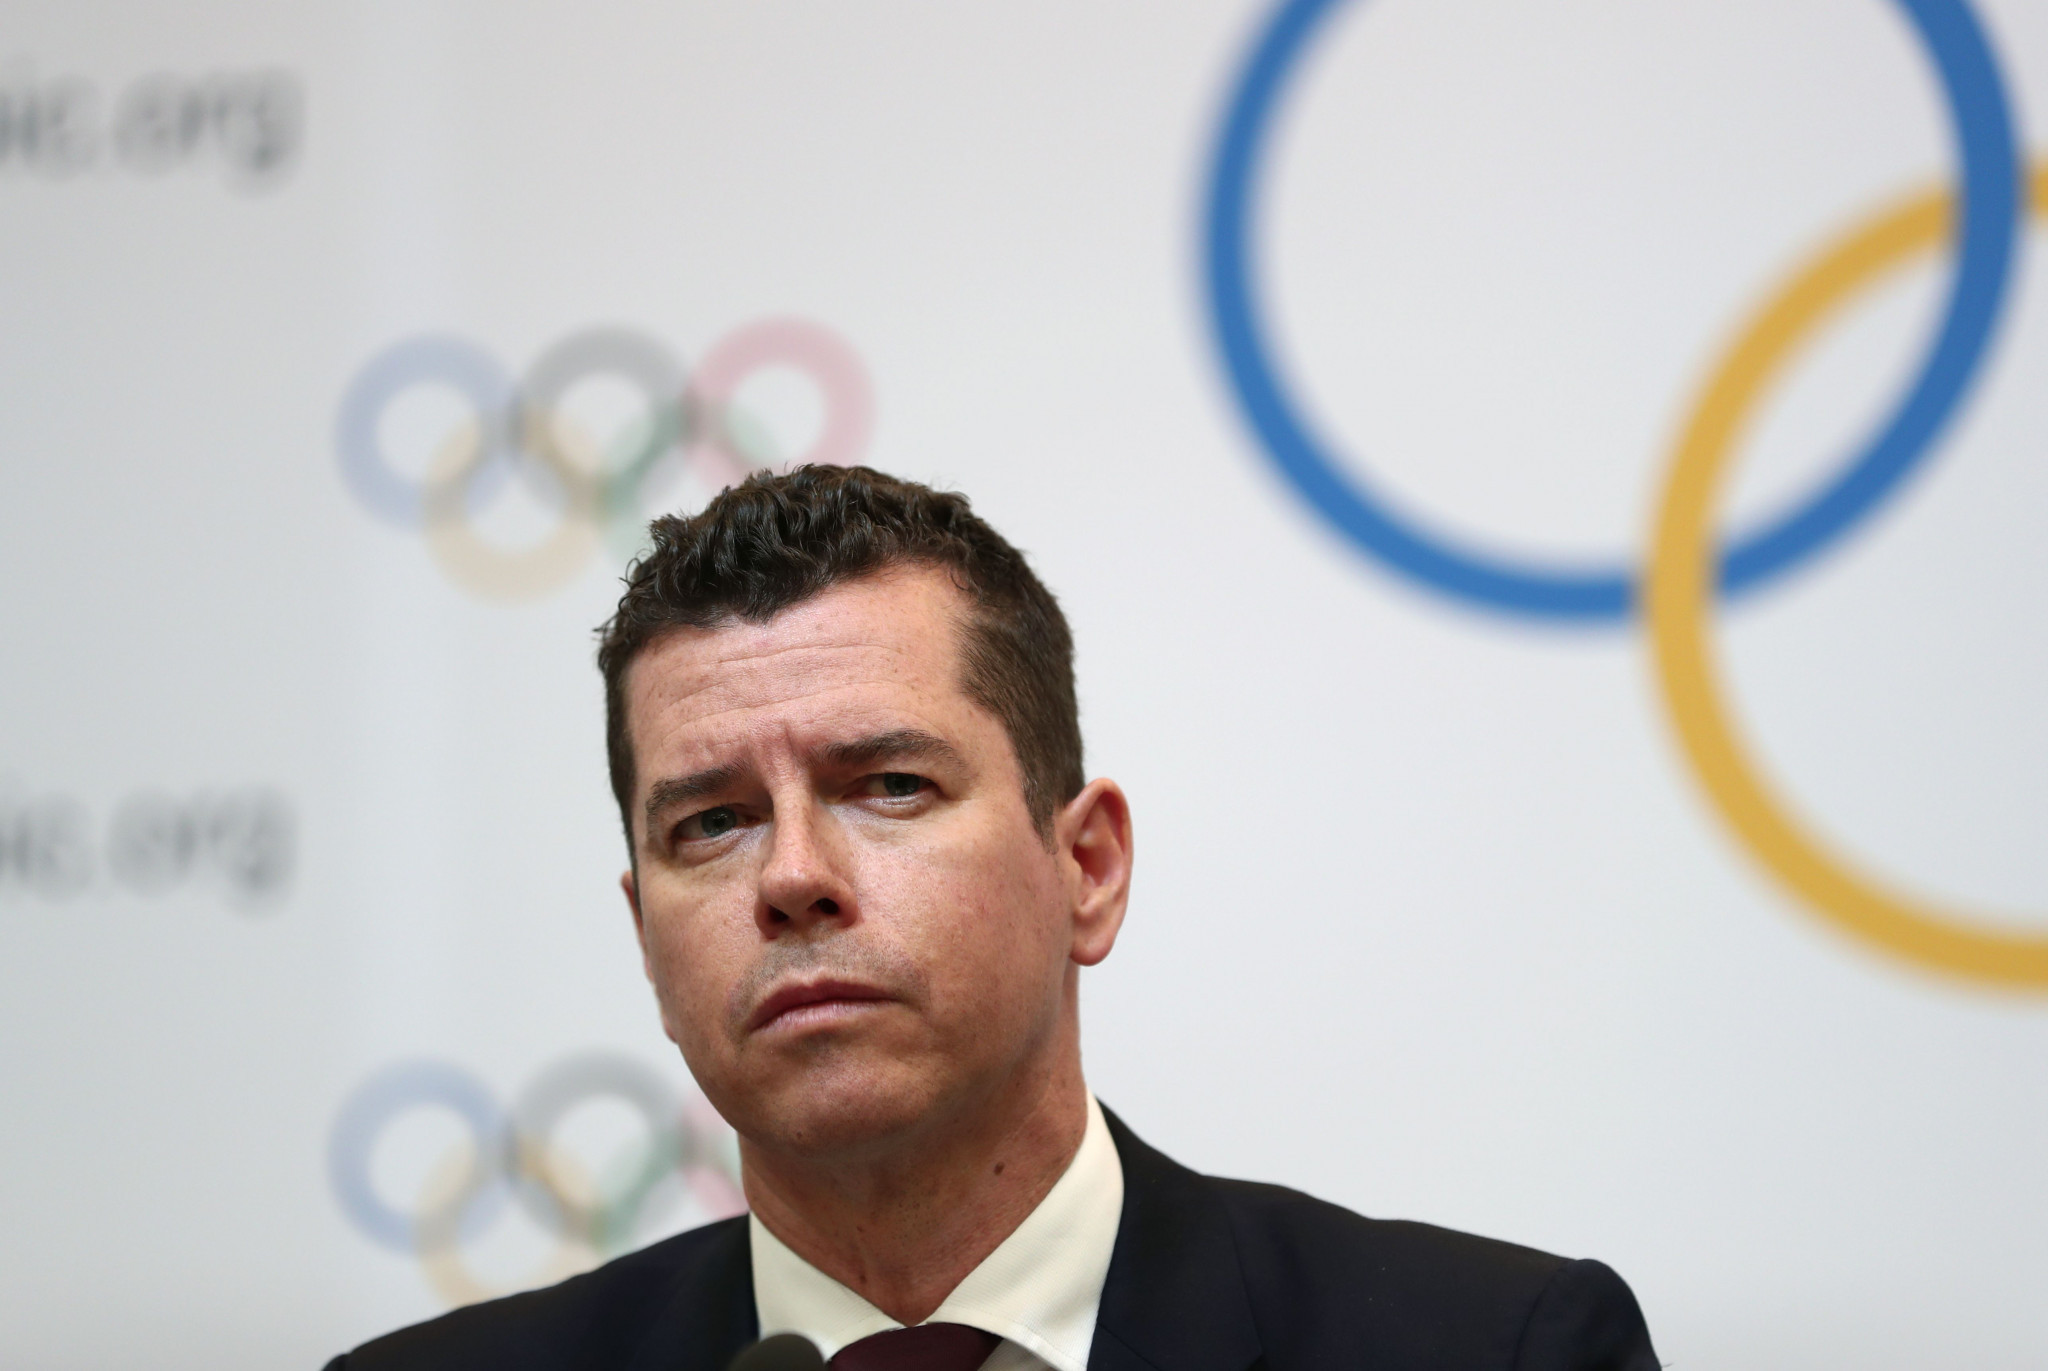 IOC sports actions director Equipment McConnell outlined the following steps for AIBA and the Olympic boxing tournament at Tokyo 2020 following the assembly identified several areas of danger with the sector governing physique ©Getty Images